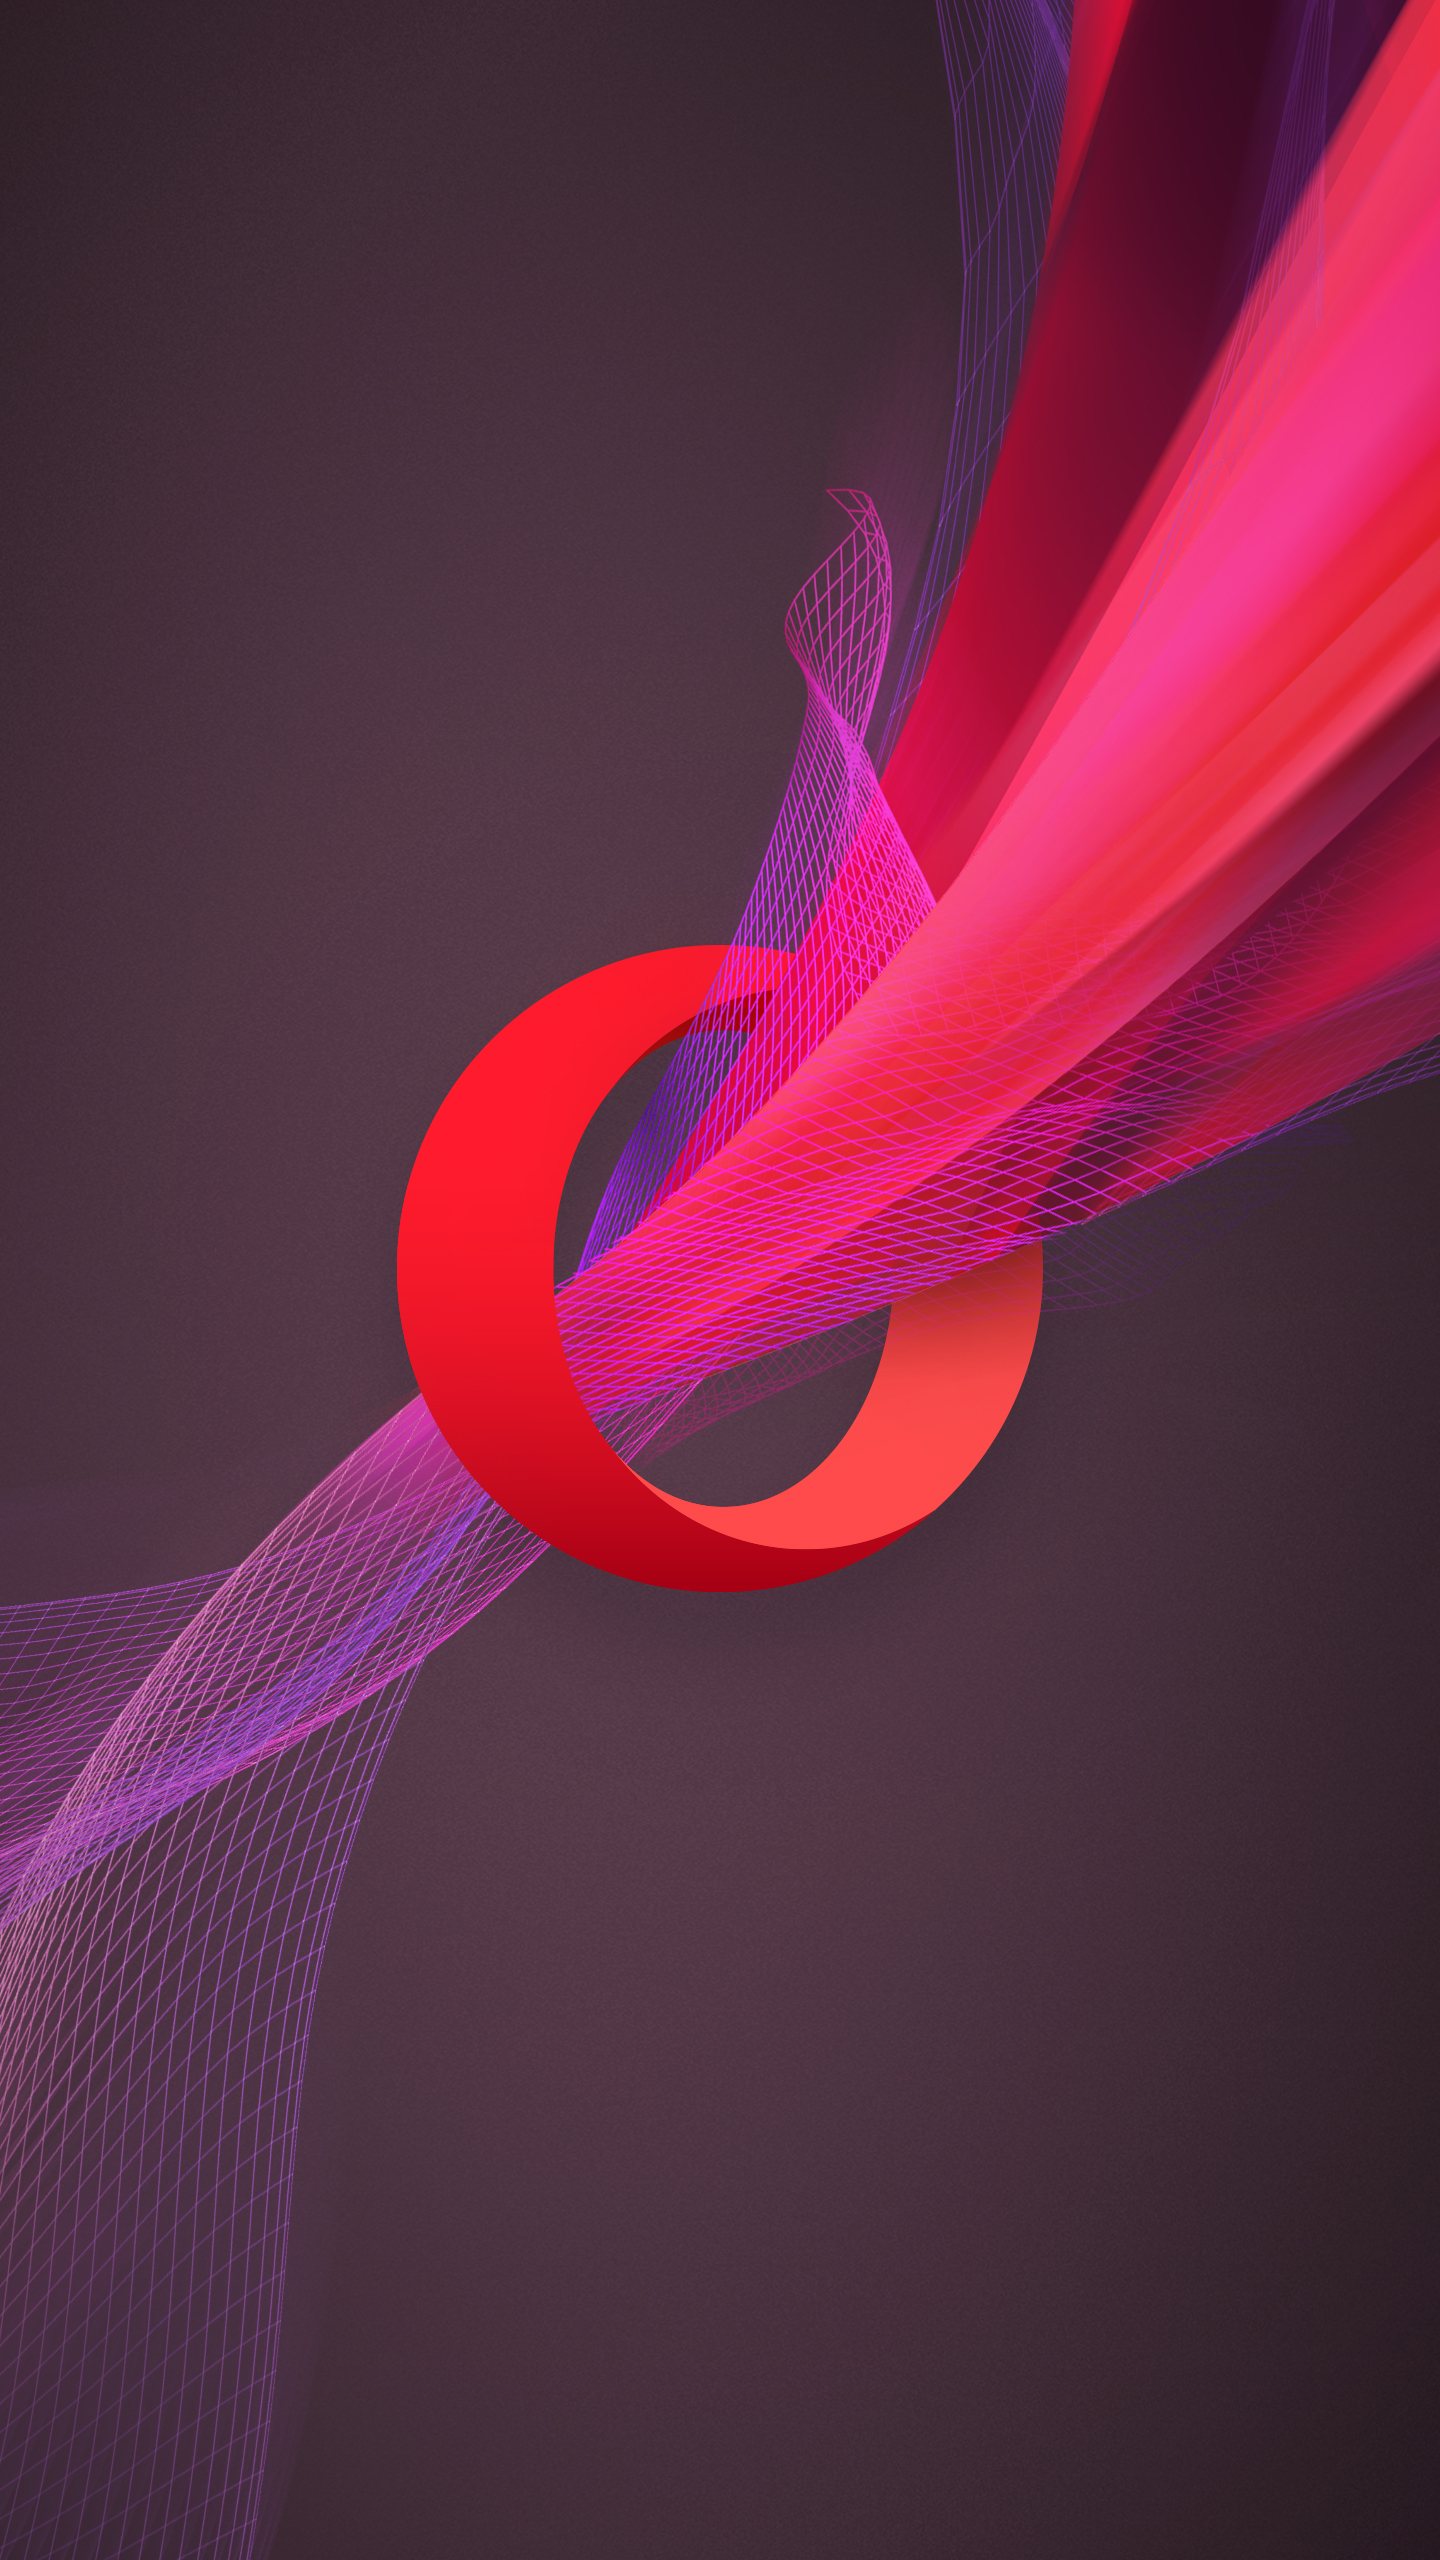 Android Wallpaper For Mobile Opera New Logo Wallpaper Mobile 1440x2560 Opera News